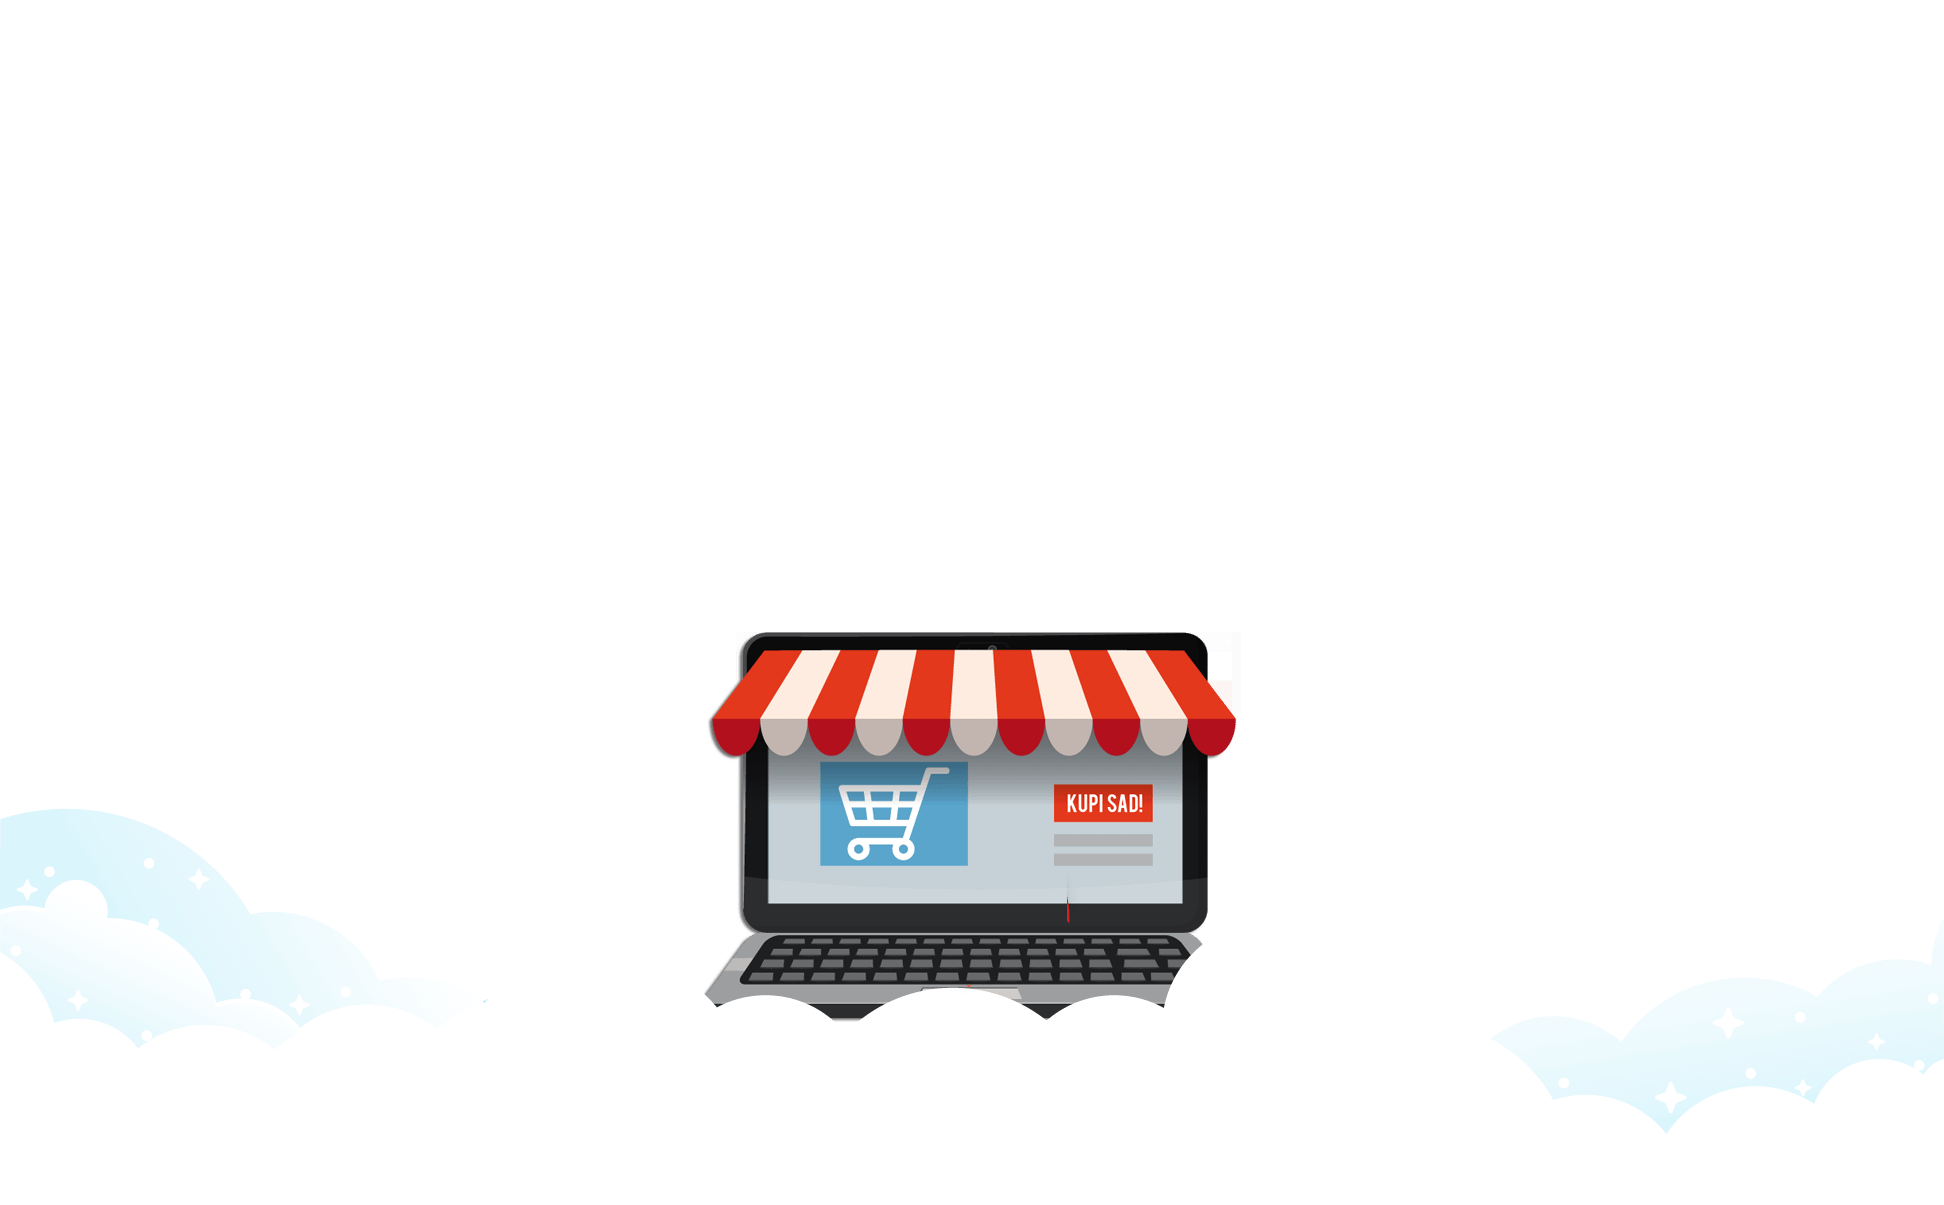 Izrada web shopova - eCommerce 1 bg web shop 2 1